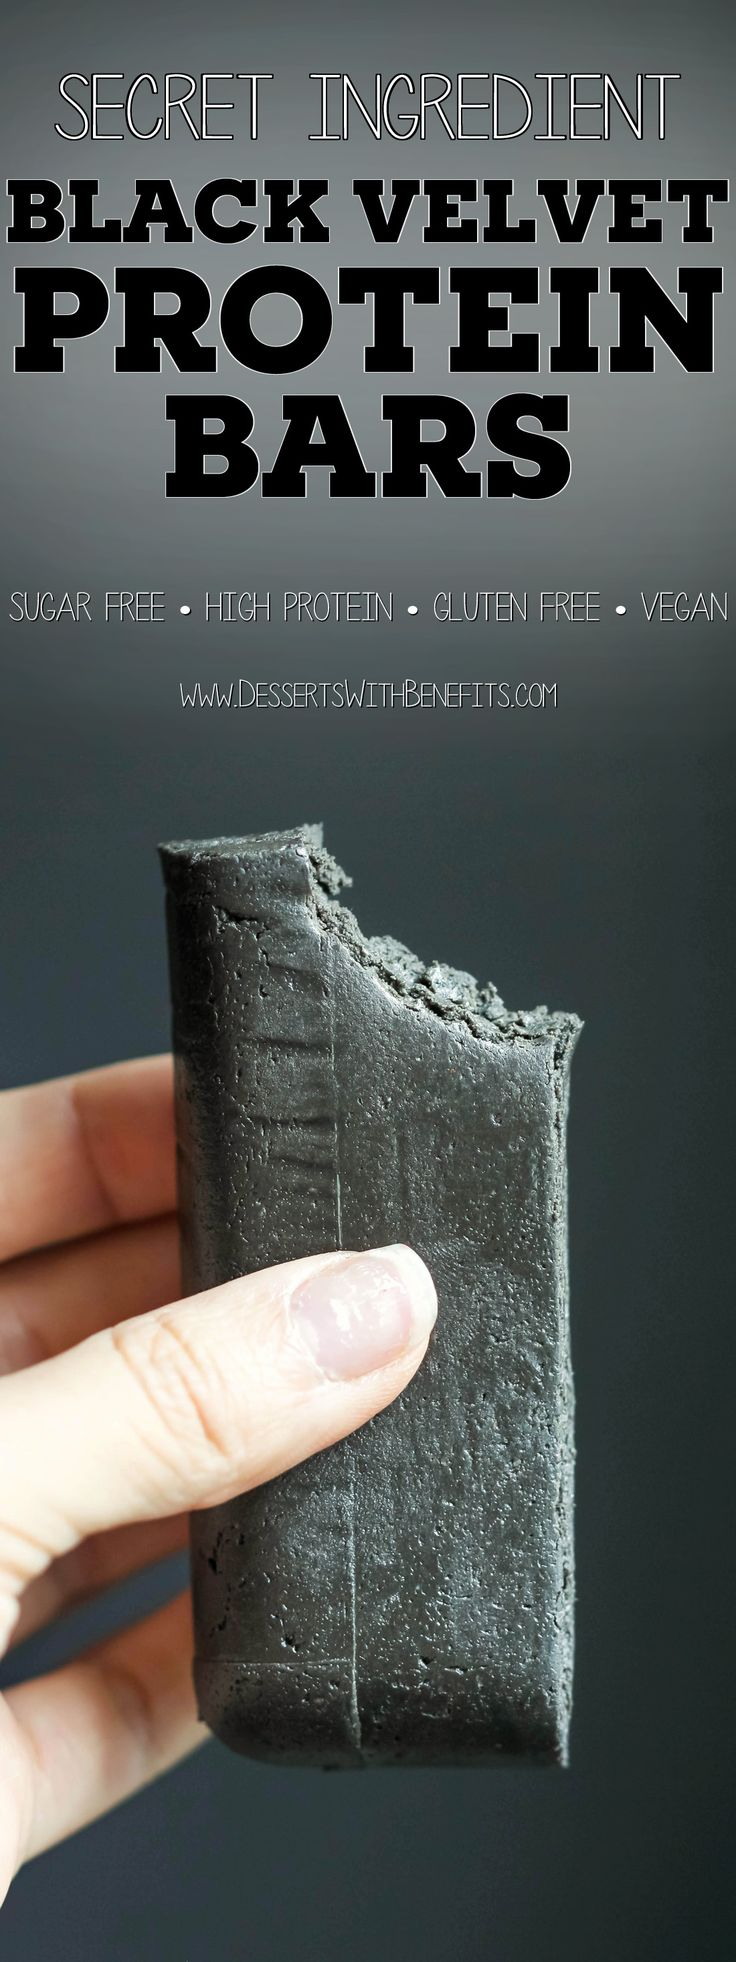 These Healthy Black Velvet DIY Protein Bars are the perfect snack for when you're wanting something sweet and chocolatey, but without the excess calories, fat, and refined sugar. With only 7 ingredients and no baking required, these homemade protein bars